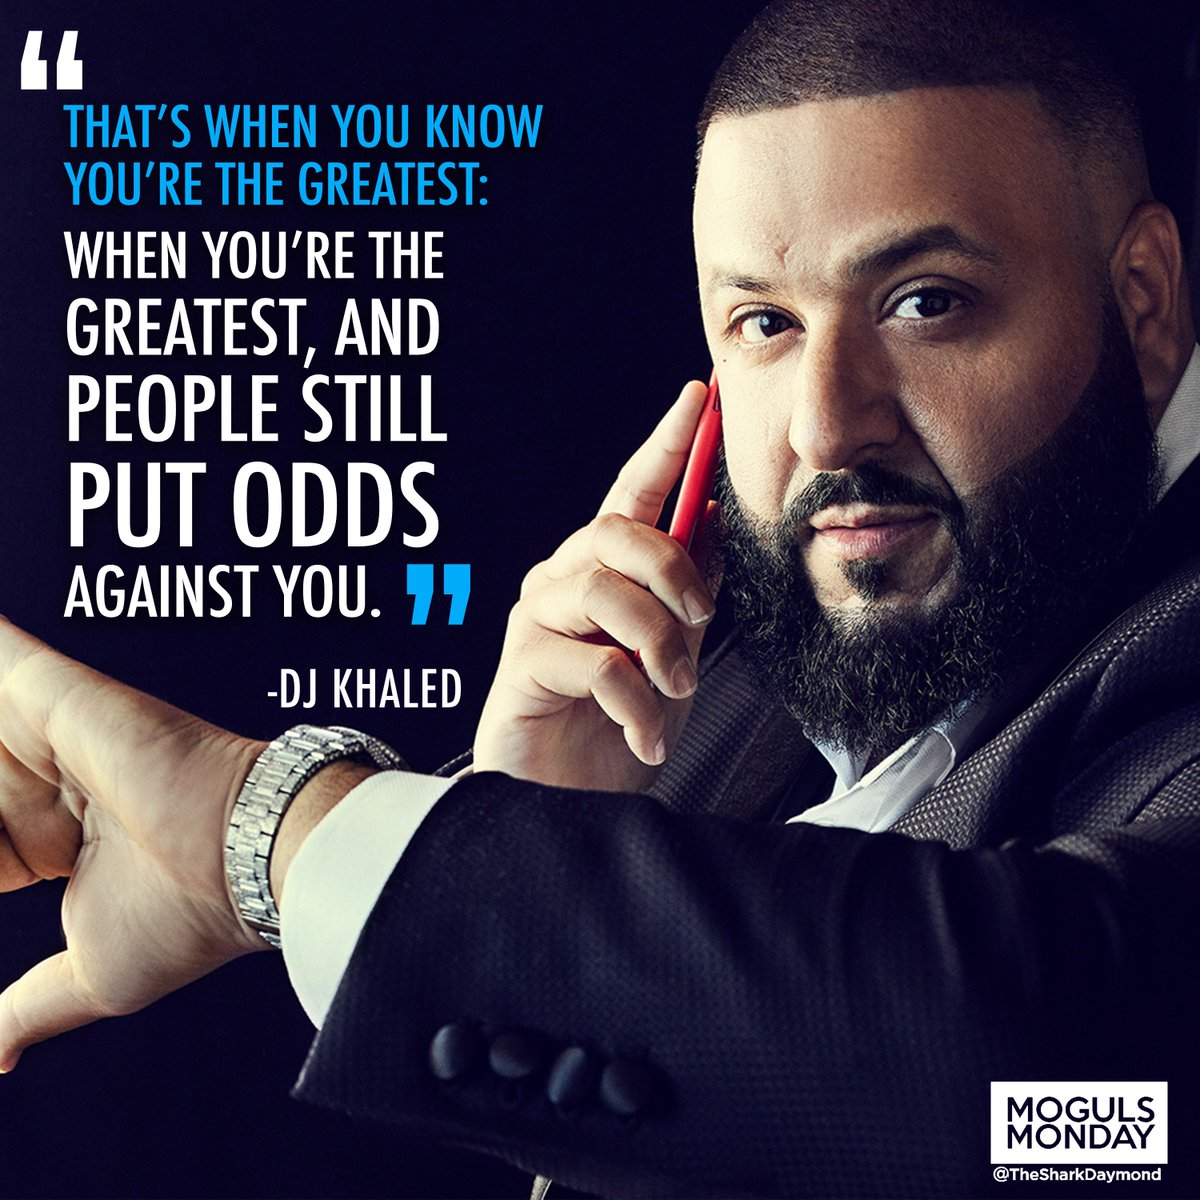 My man @djkhaled worked his way up from DJing school dances to the top of the music scene. #MogulsMonday